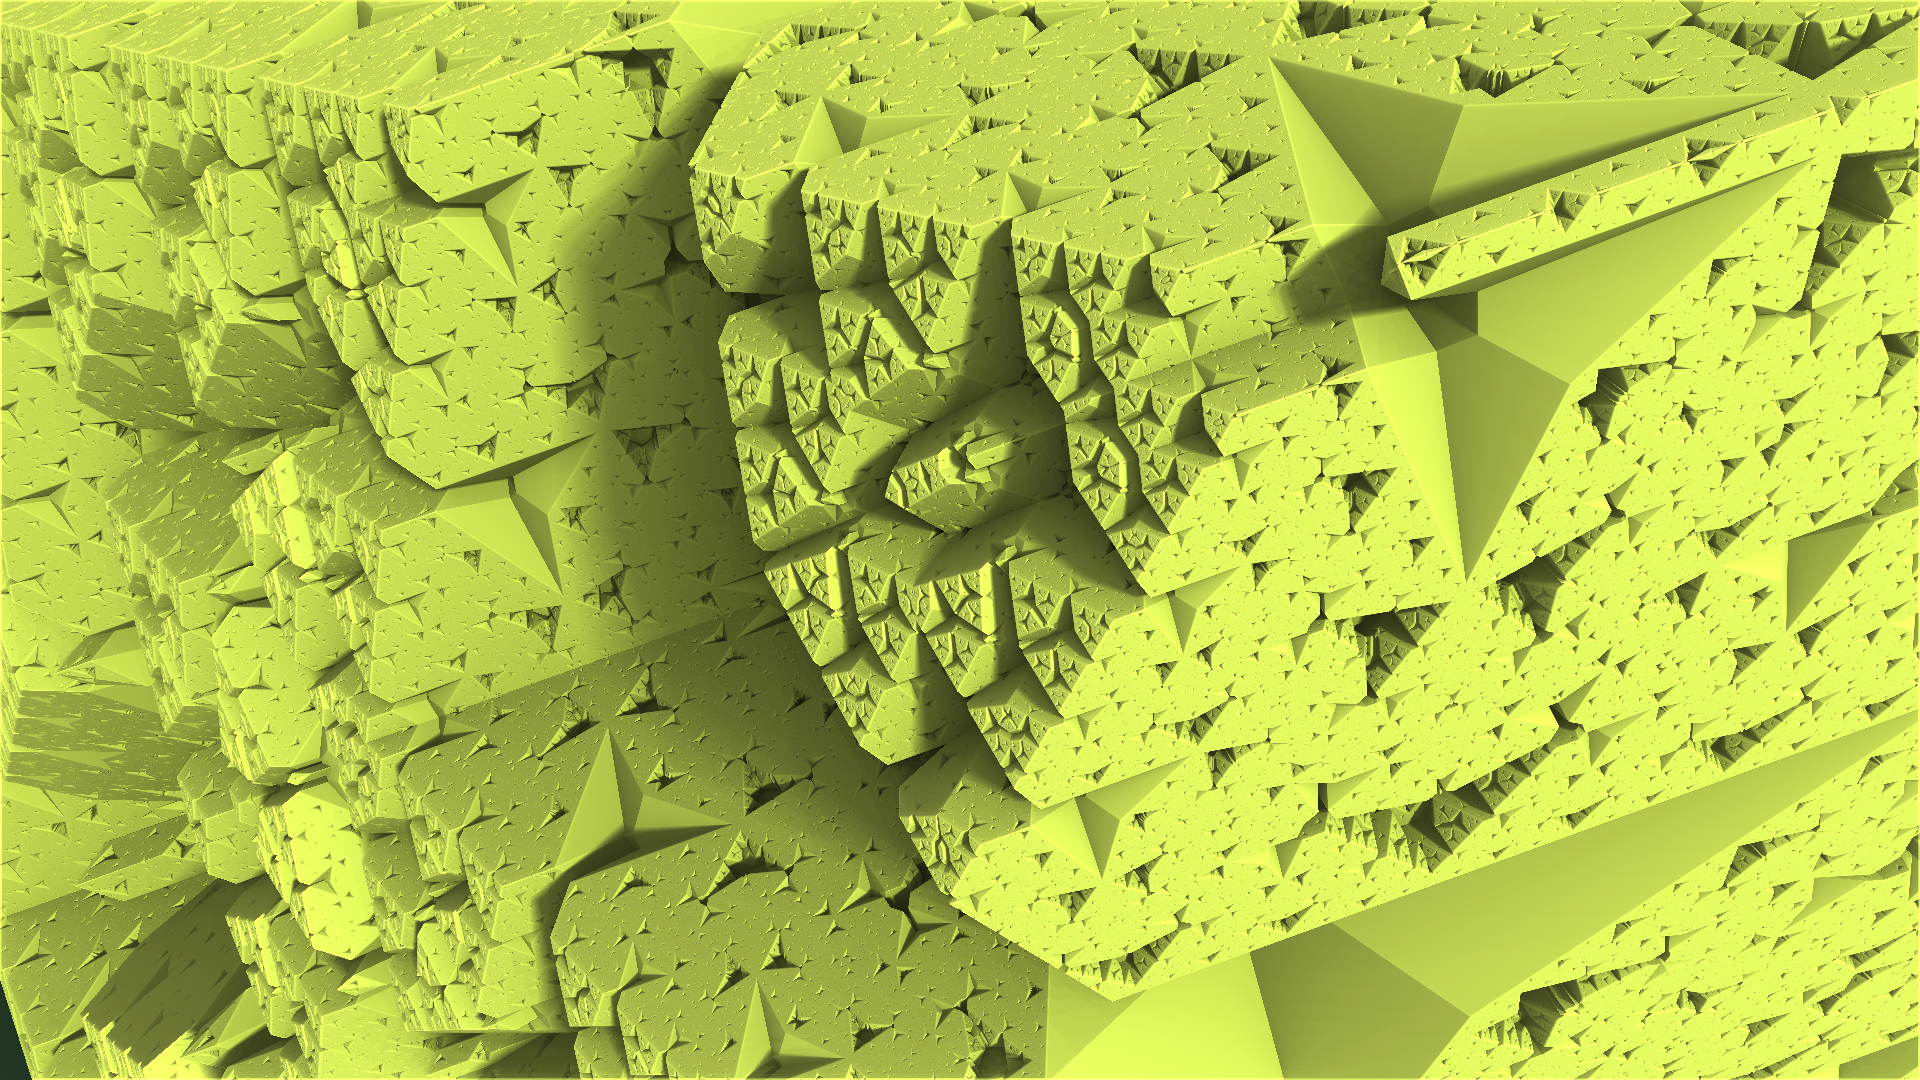 Abstract - Fractal  Mandelbulber 3D Geometry Triangle Green Artistic Digital Art Abstract Wallpaper